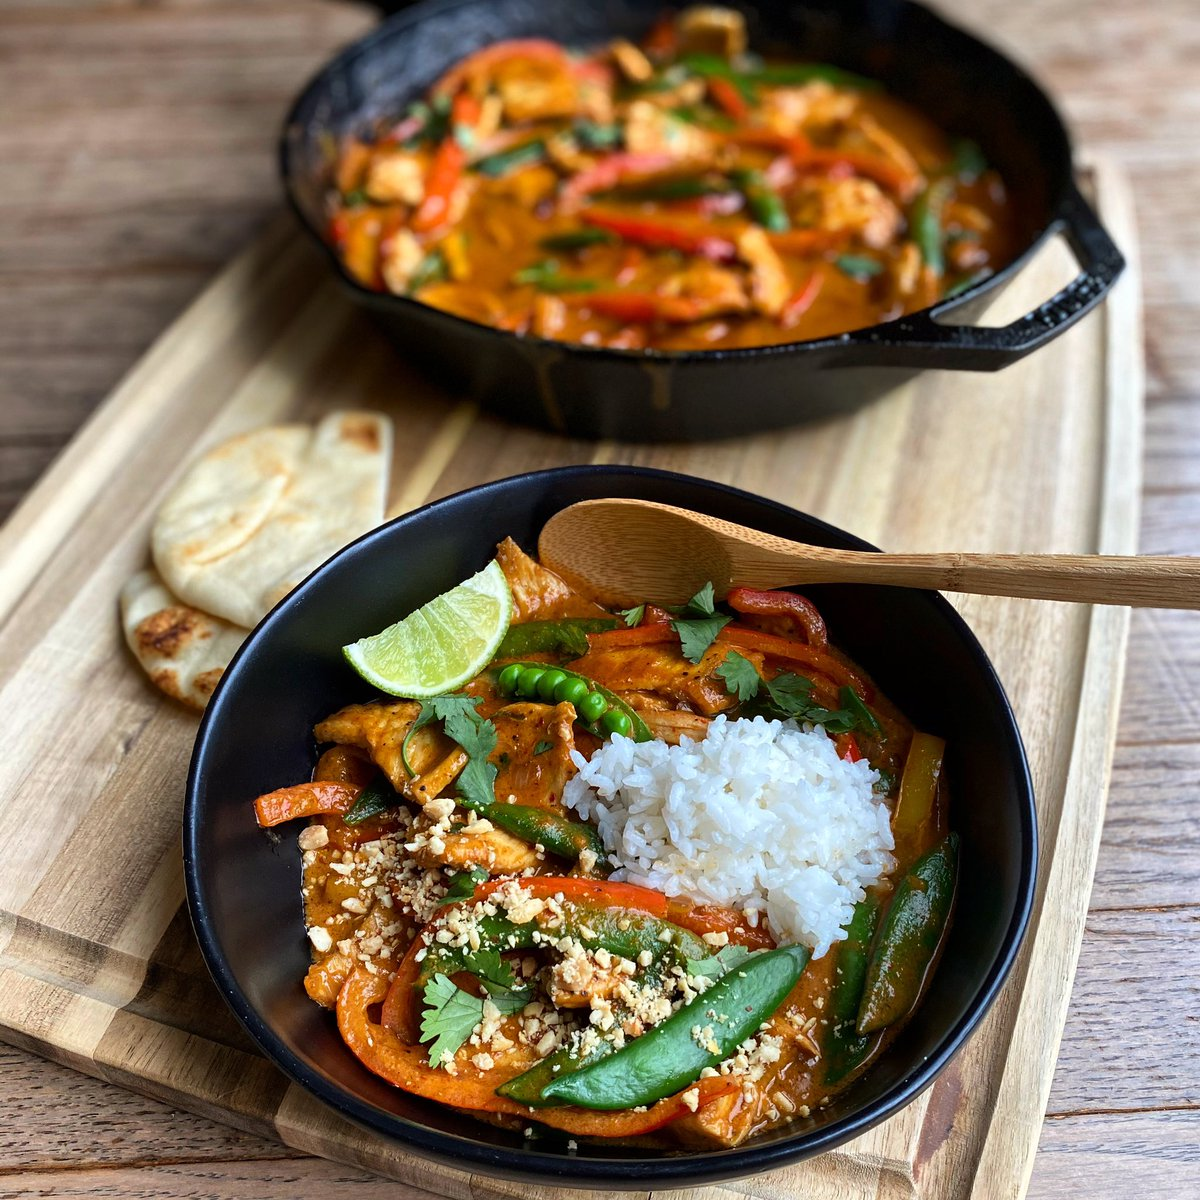 Pimp my rice. Parang Curry with Chicken and Rice. Being of Korean descent, the curry I grew up with is radically different than any other Asian curry. It just took smelling someone's Panang Curry to blow my mind. Dang  #foodnetworkkitchen #foodnetwork <br>http://pic.twitter.com/ns73RVuYQ3